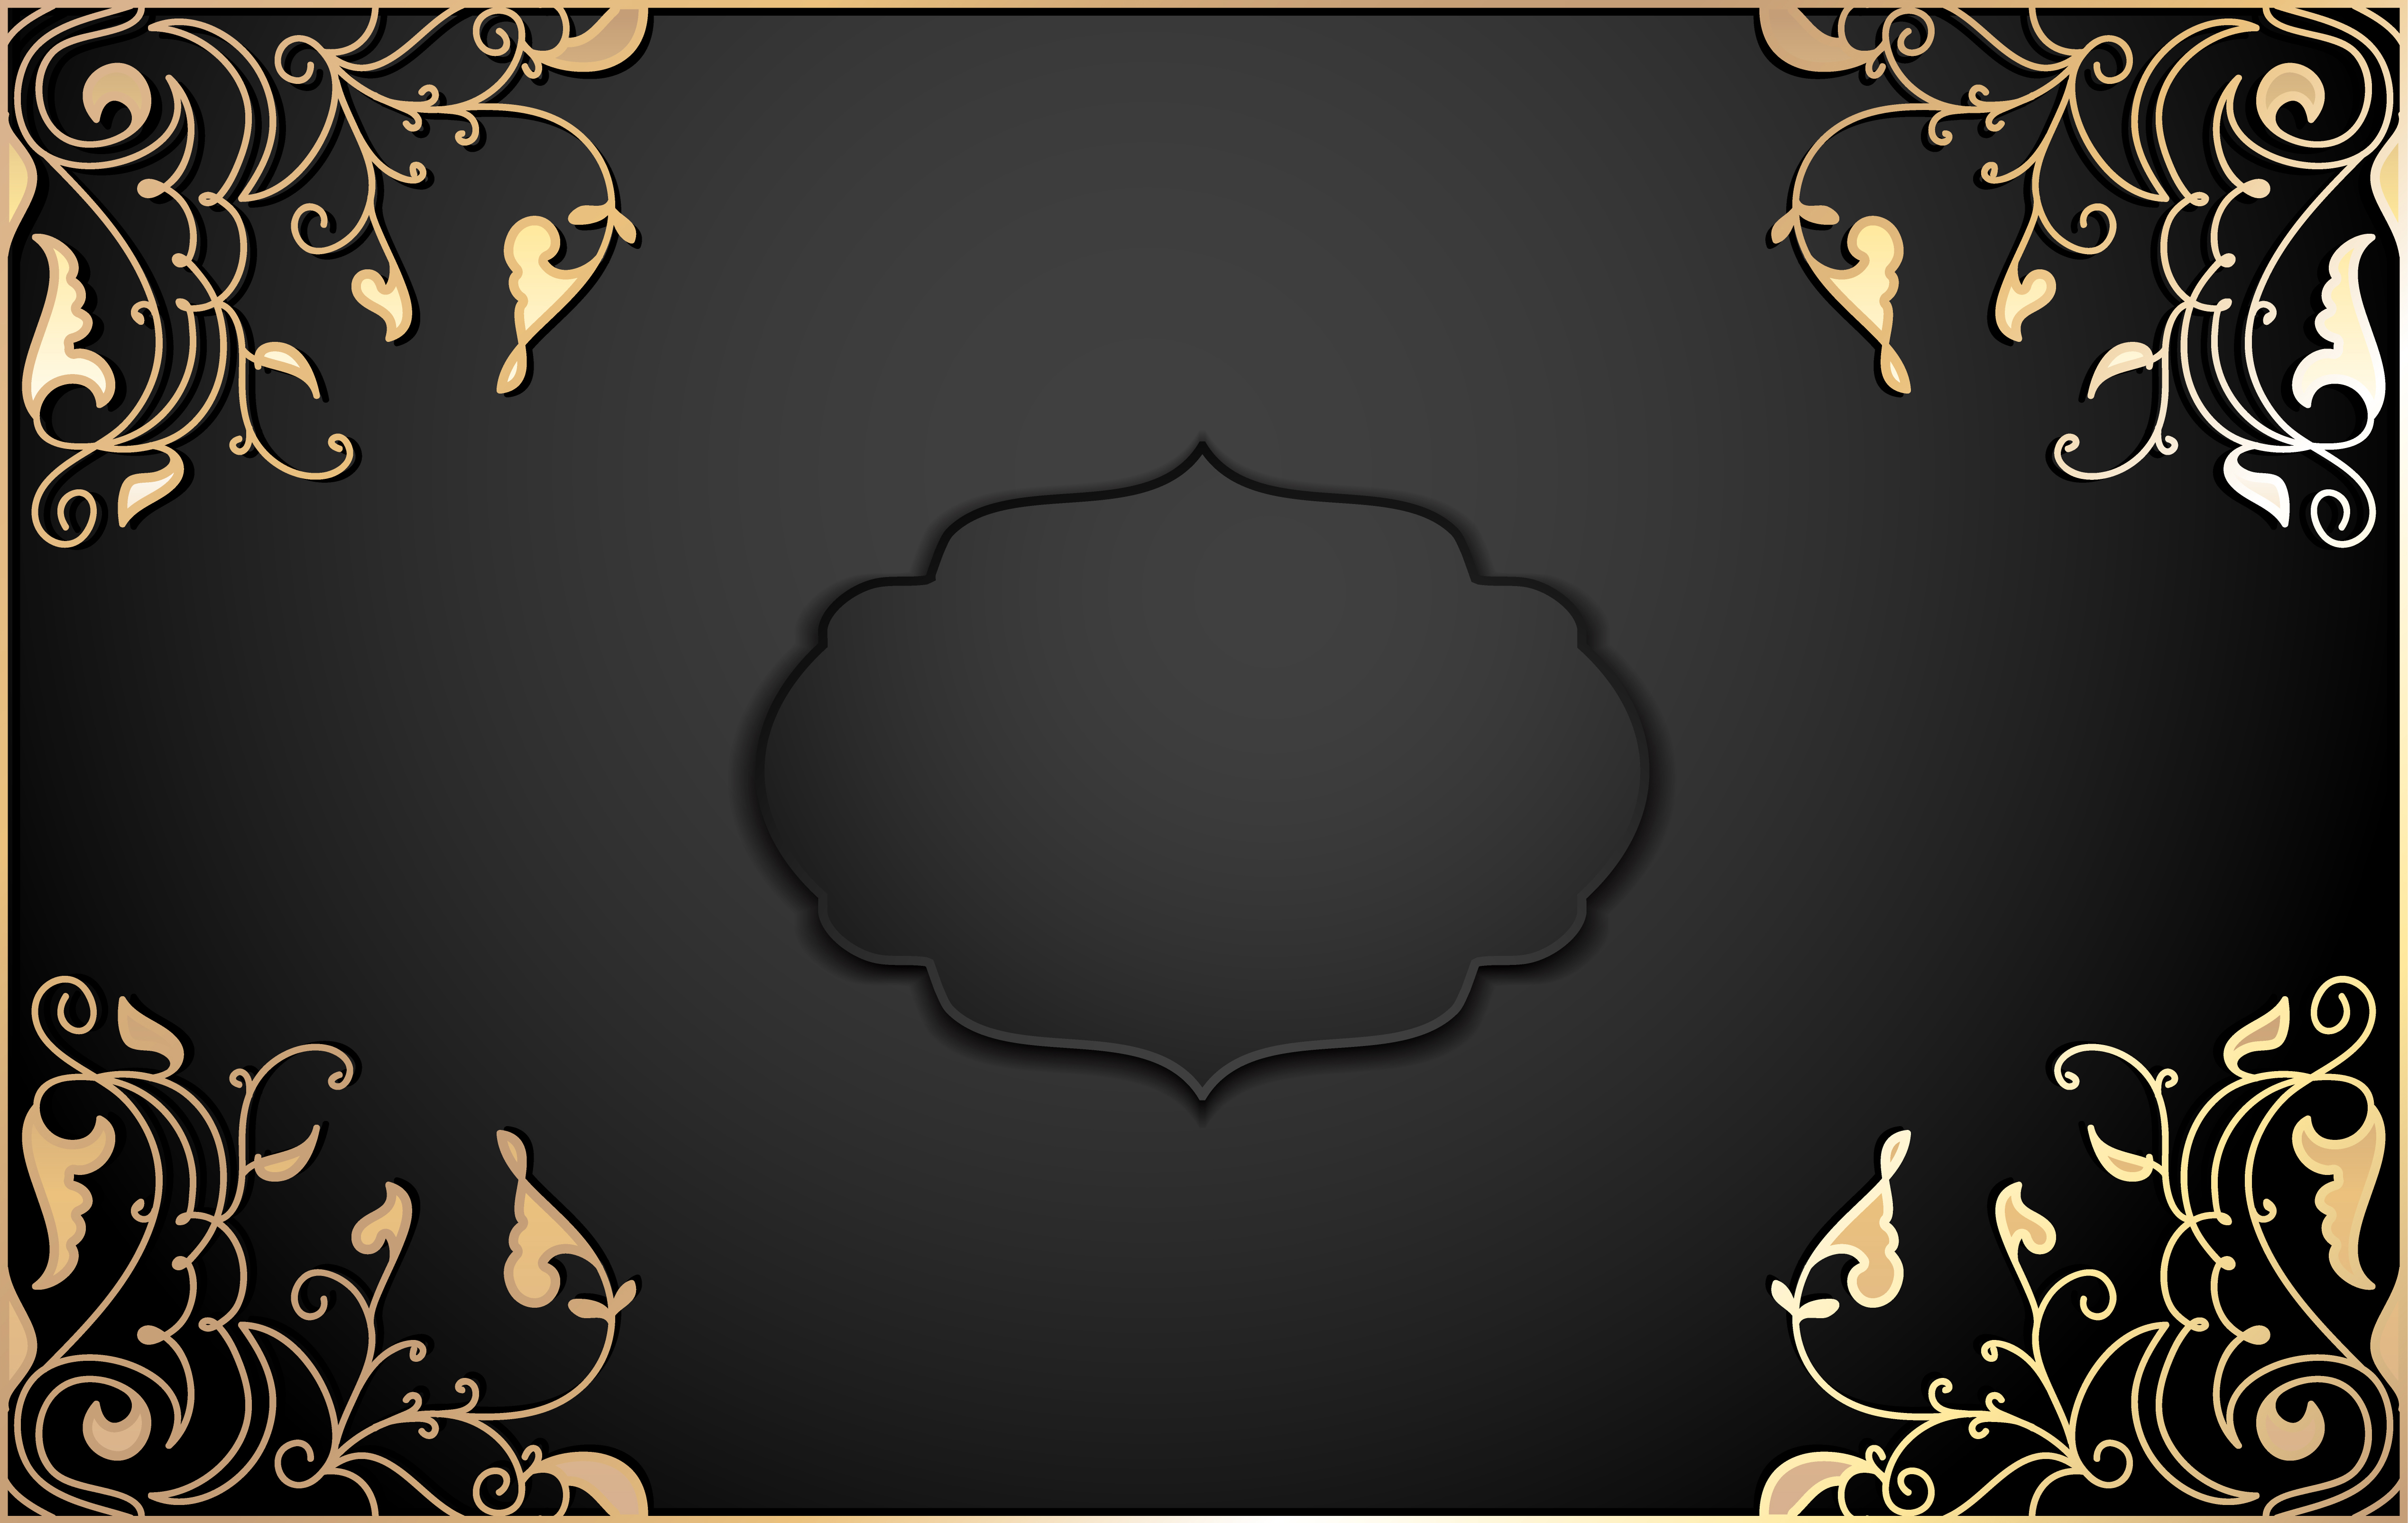 club card gold lace invitation background vip guests